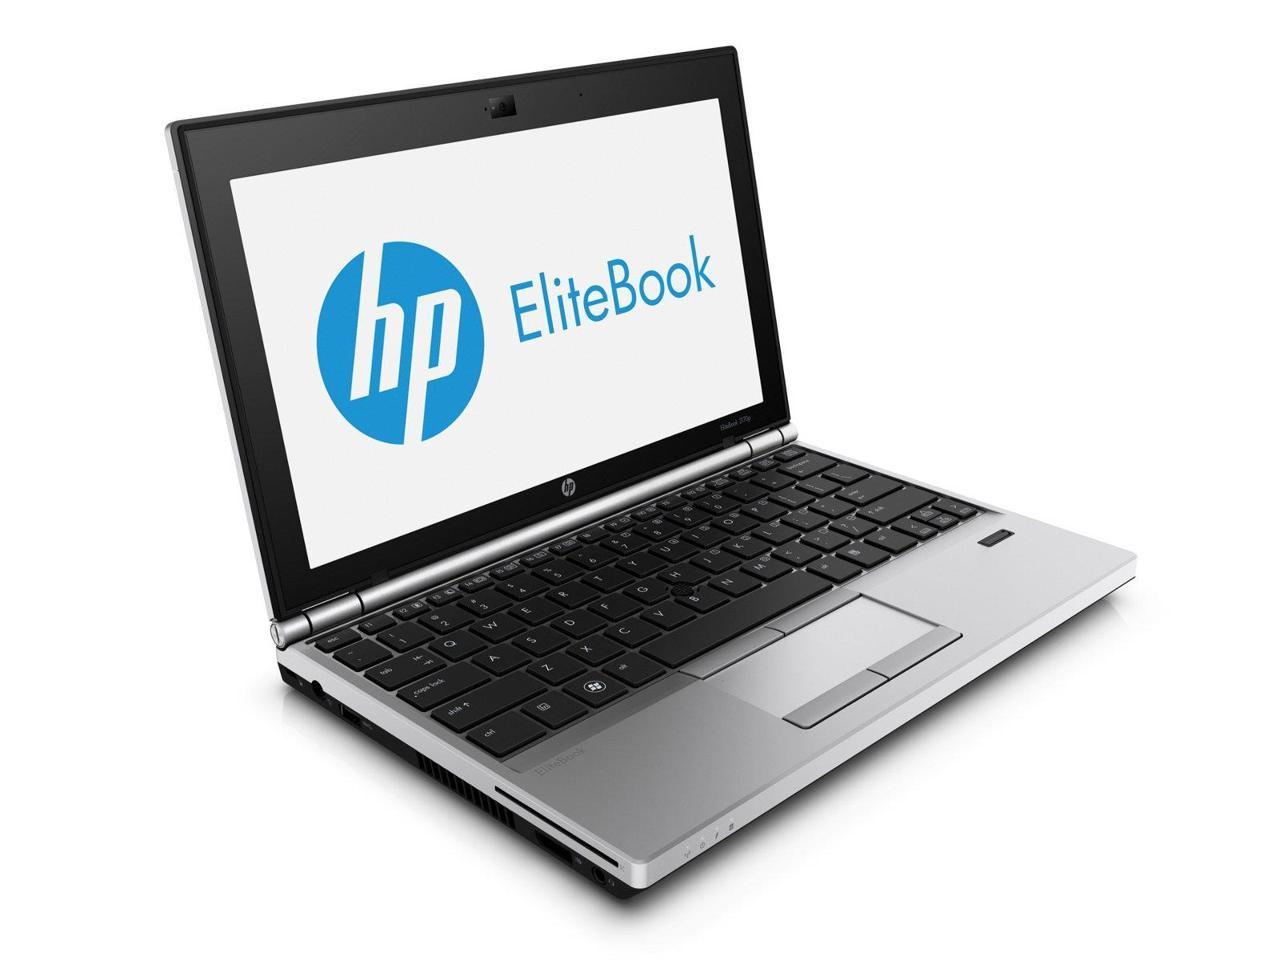 "Refurbished: HP Laptop (Scratch and Dent) EliteBook 8570P Intel Core i5 3rd Gen 3320M (2.60 GHz) 4 GB Memory 250 GB HDD AMD Radeon HD 7570M 15.6"" Windows 7 Professional - OEM"